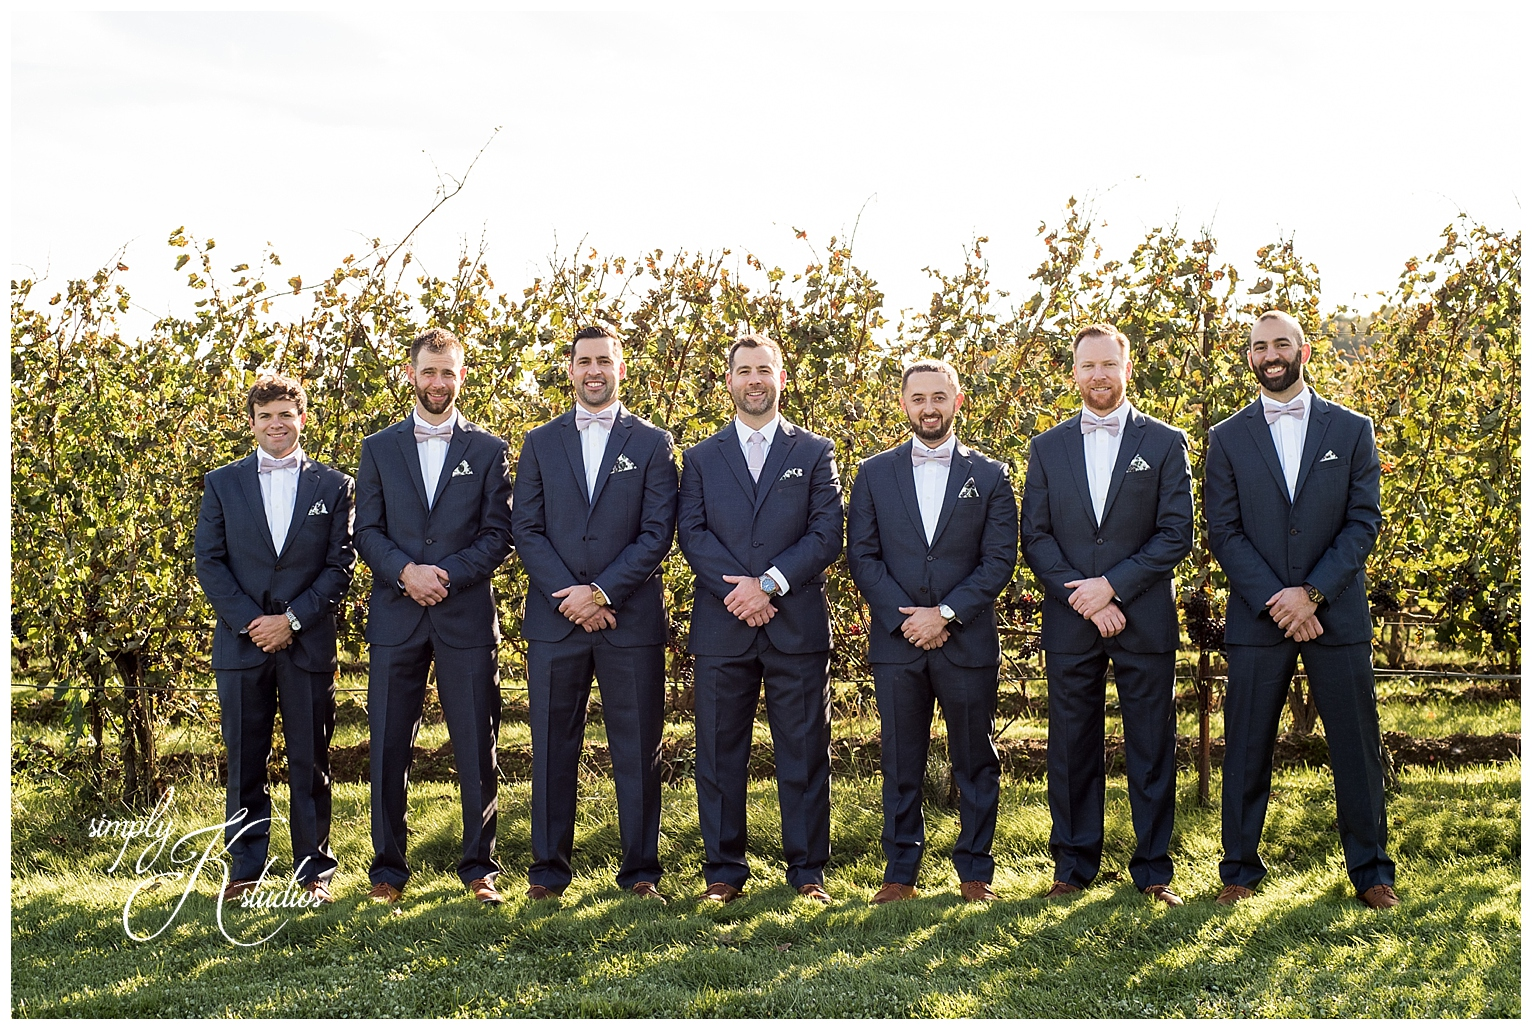 55 Groomsmen at a Vineyard Wedding CT.jpg